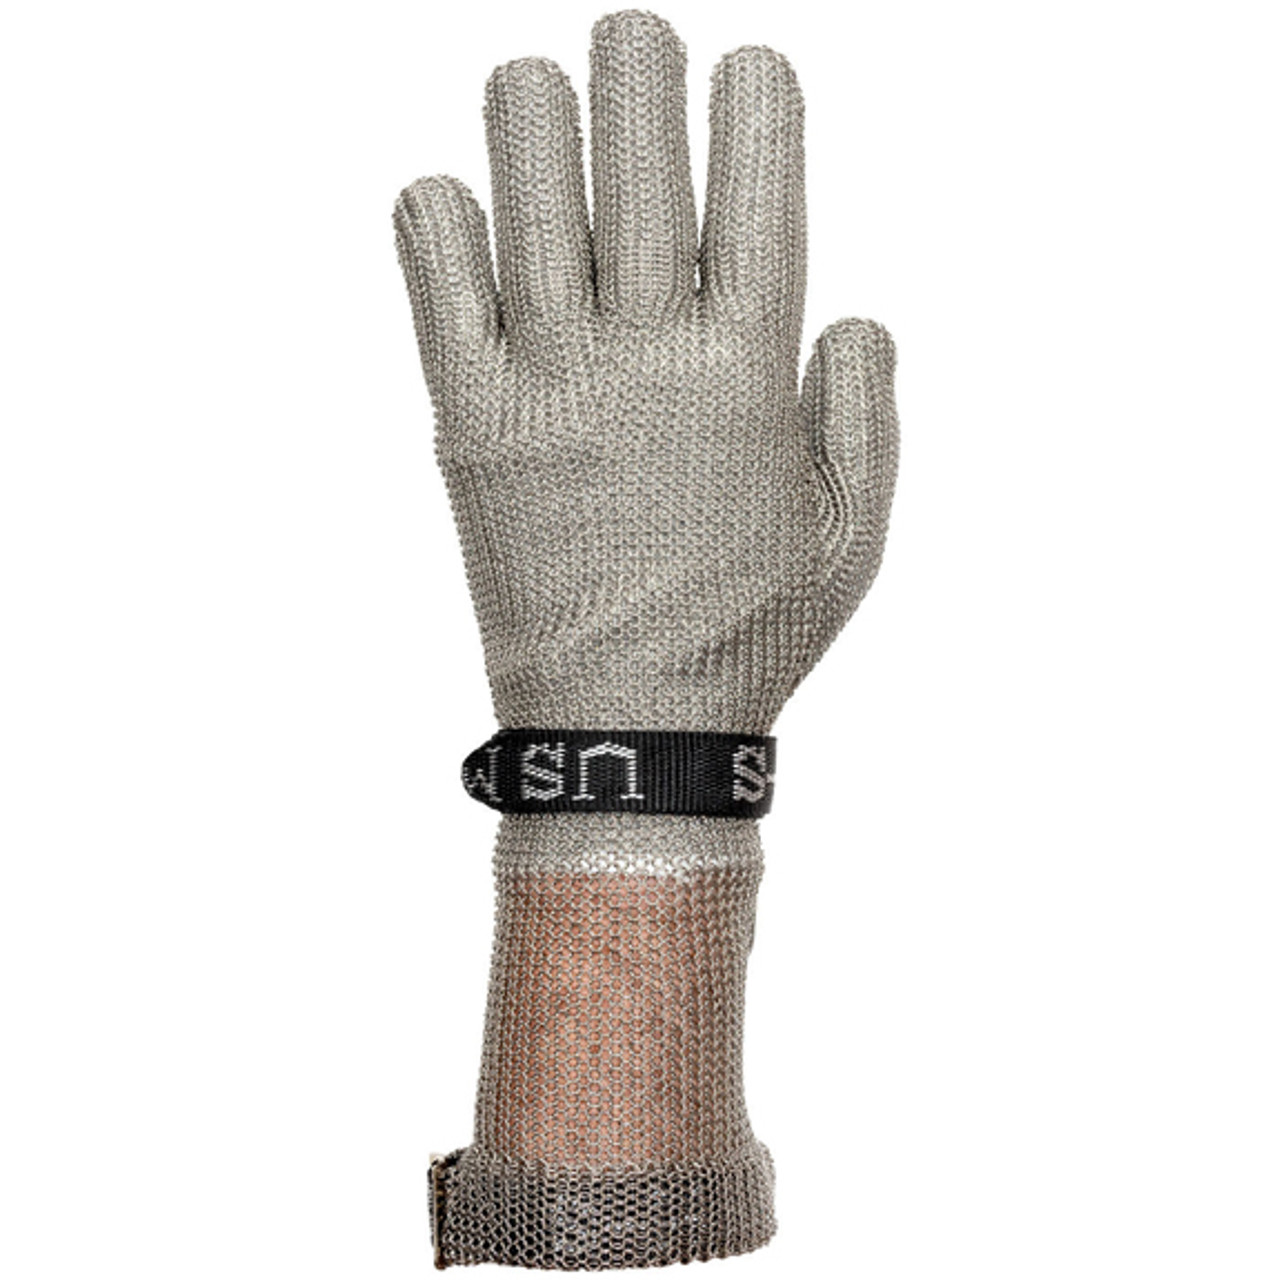 Reliable Factory Supply Sells US Mesh Gloves